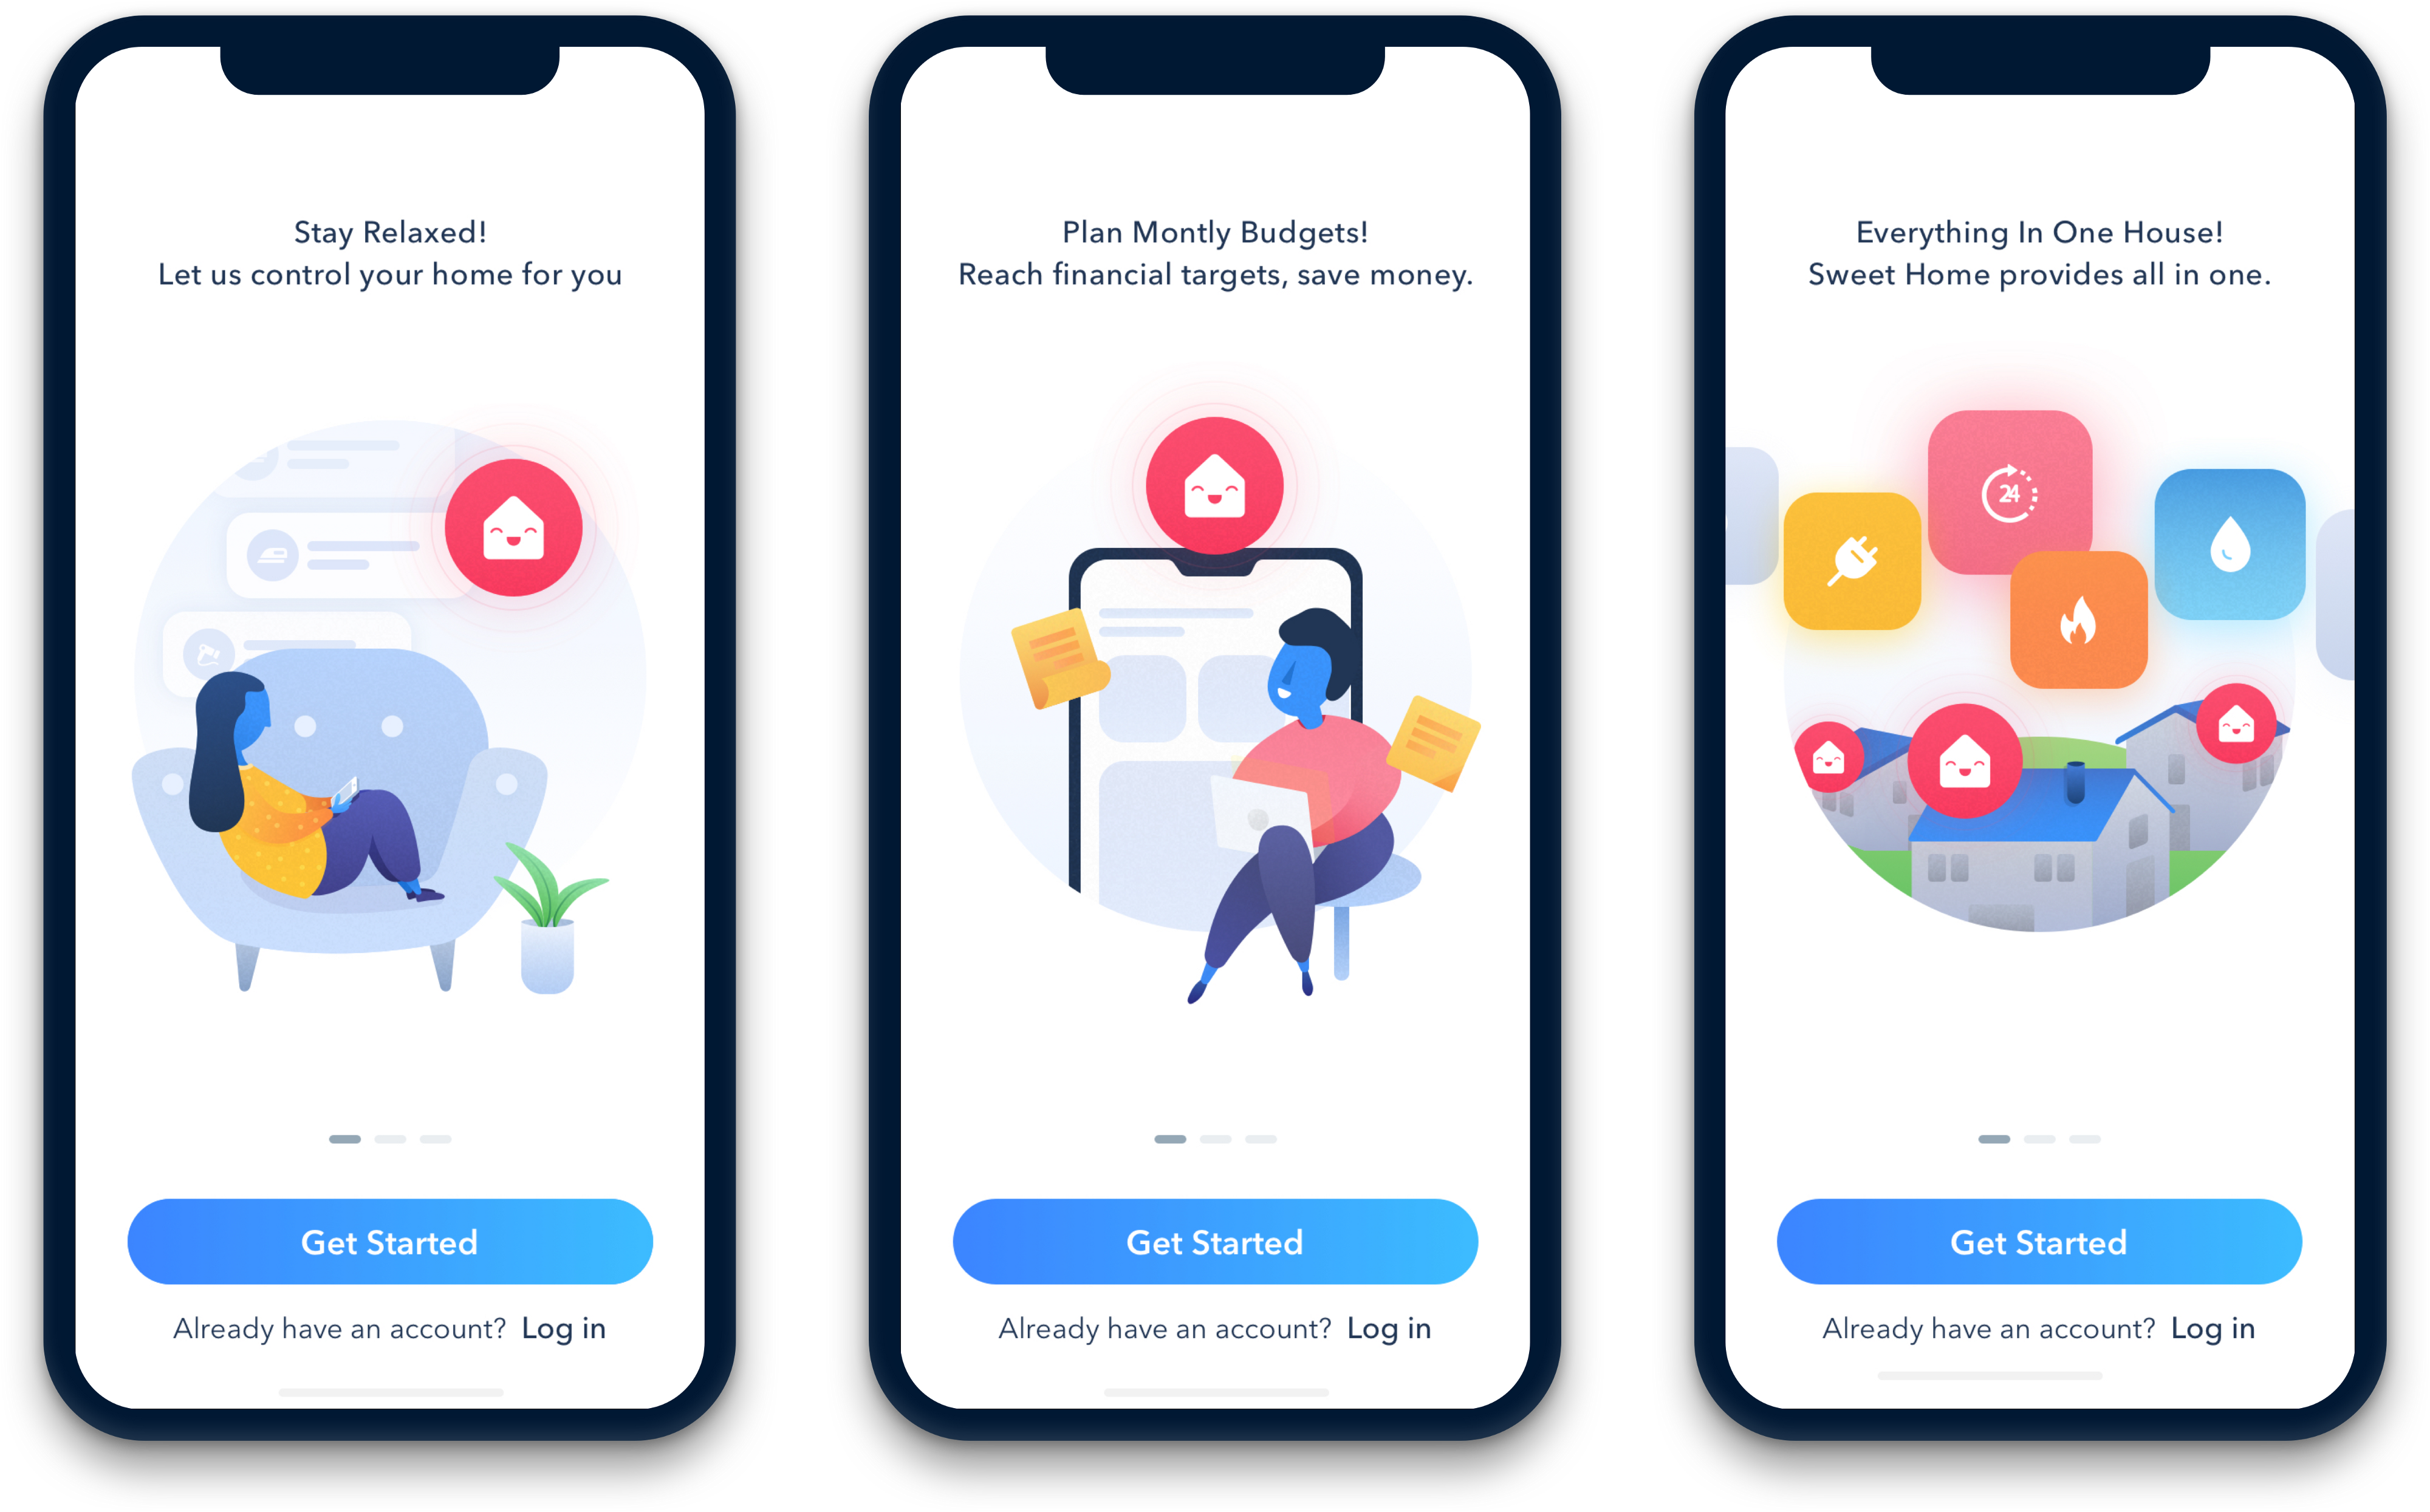 Sweet Home Smart Home Energy Monitor A Ux Case Study By Sepideh Sabour Ux Collective